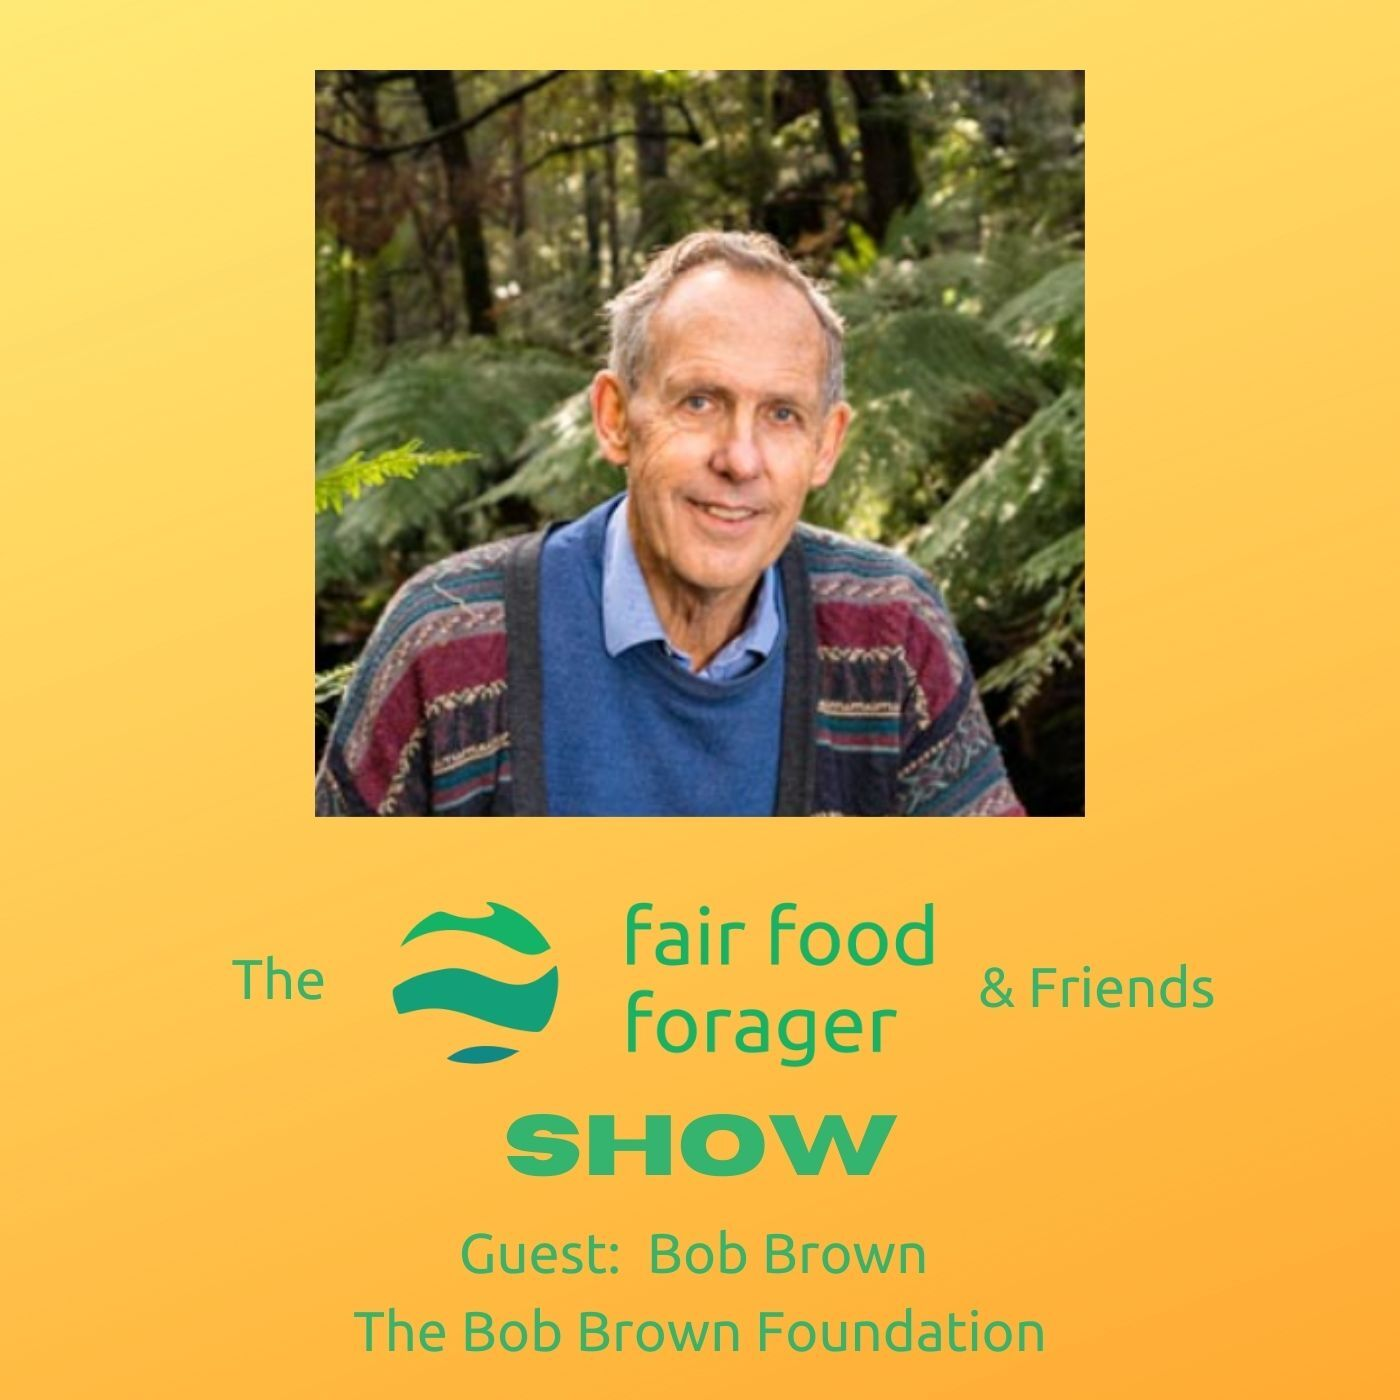 #18 Bob Brown - The Bob Brown Foundation, putting the future of the planet above ones self